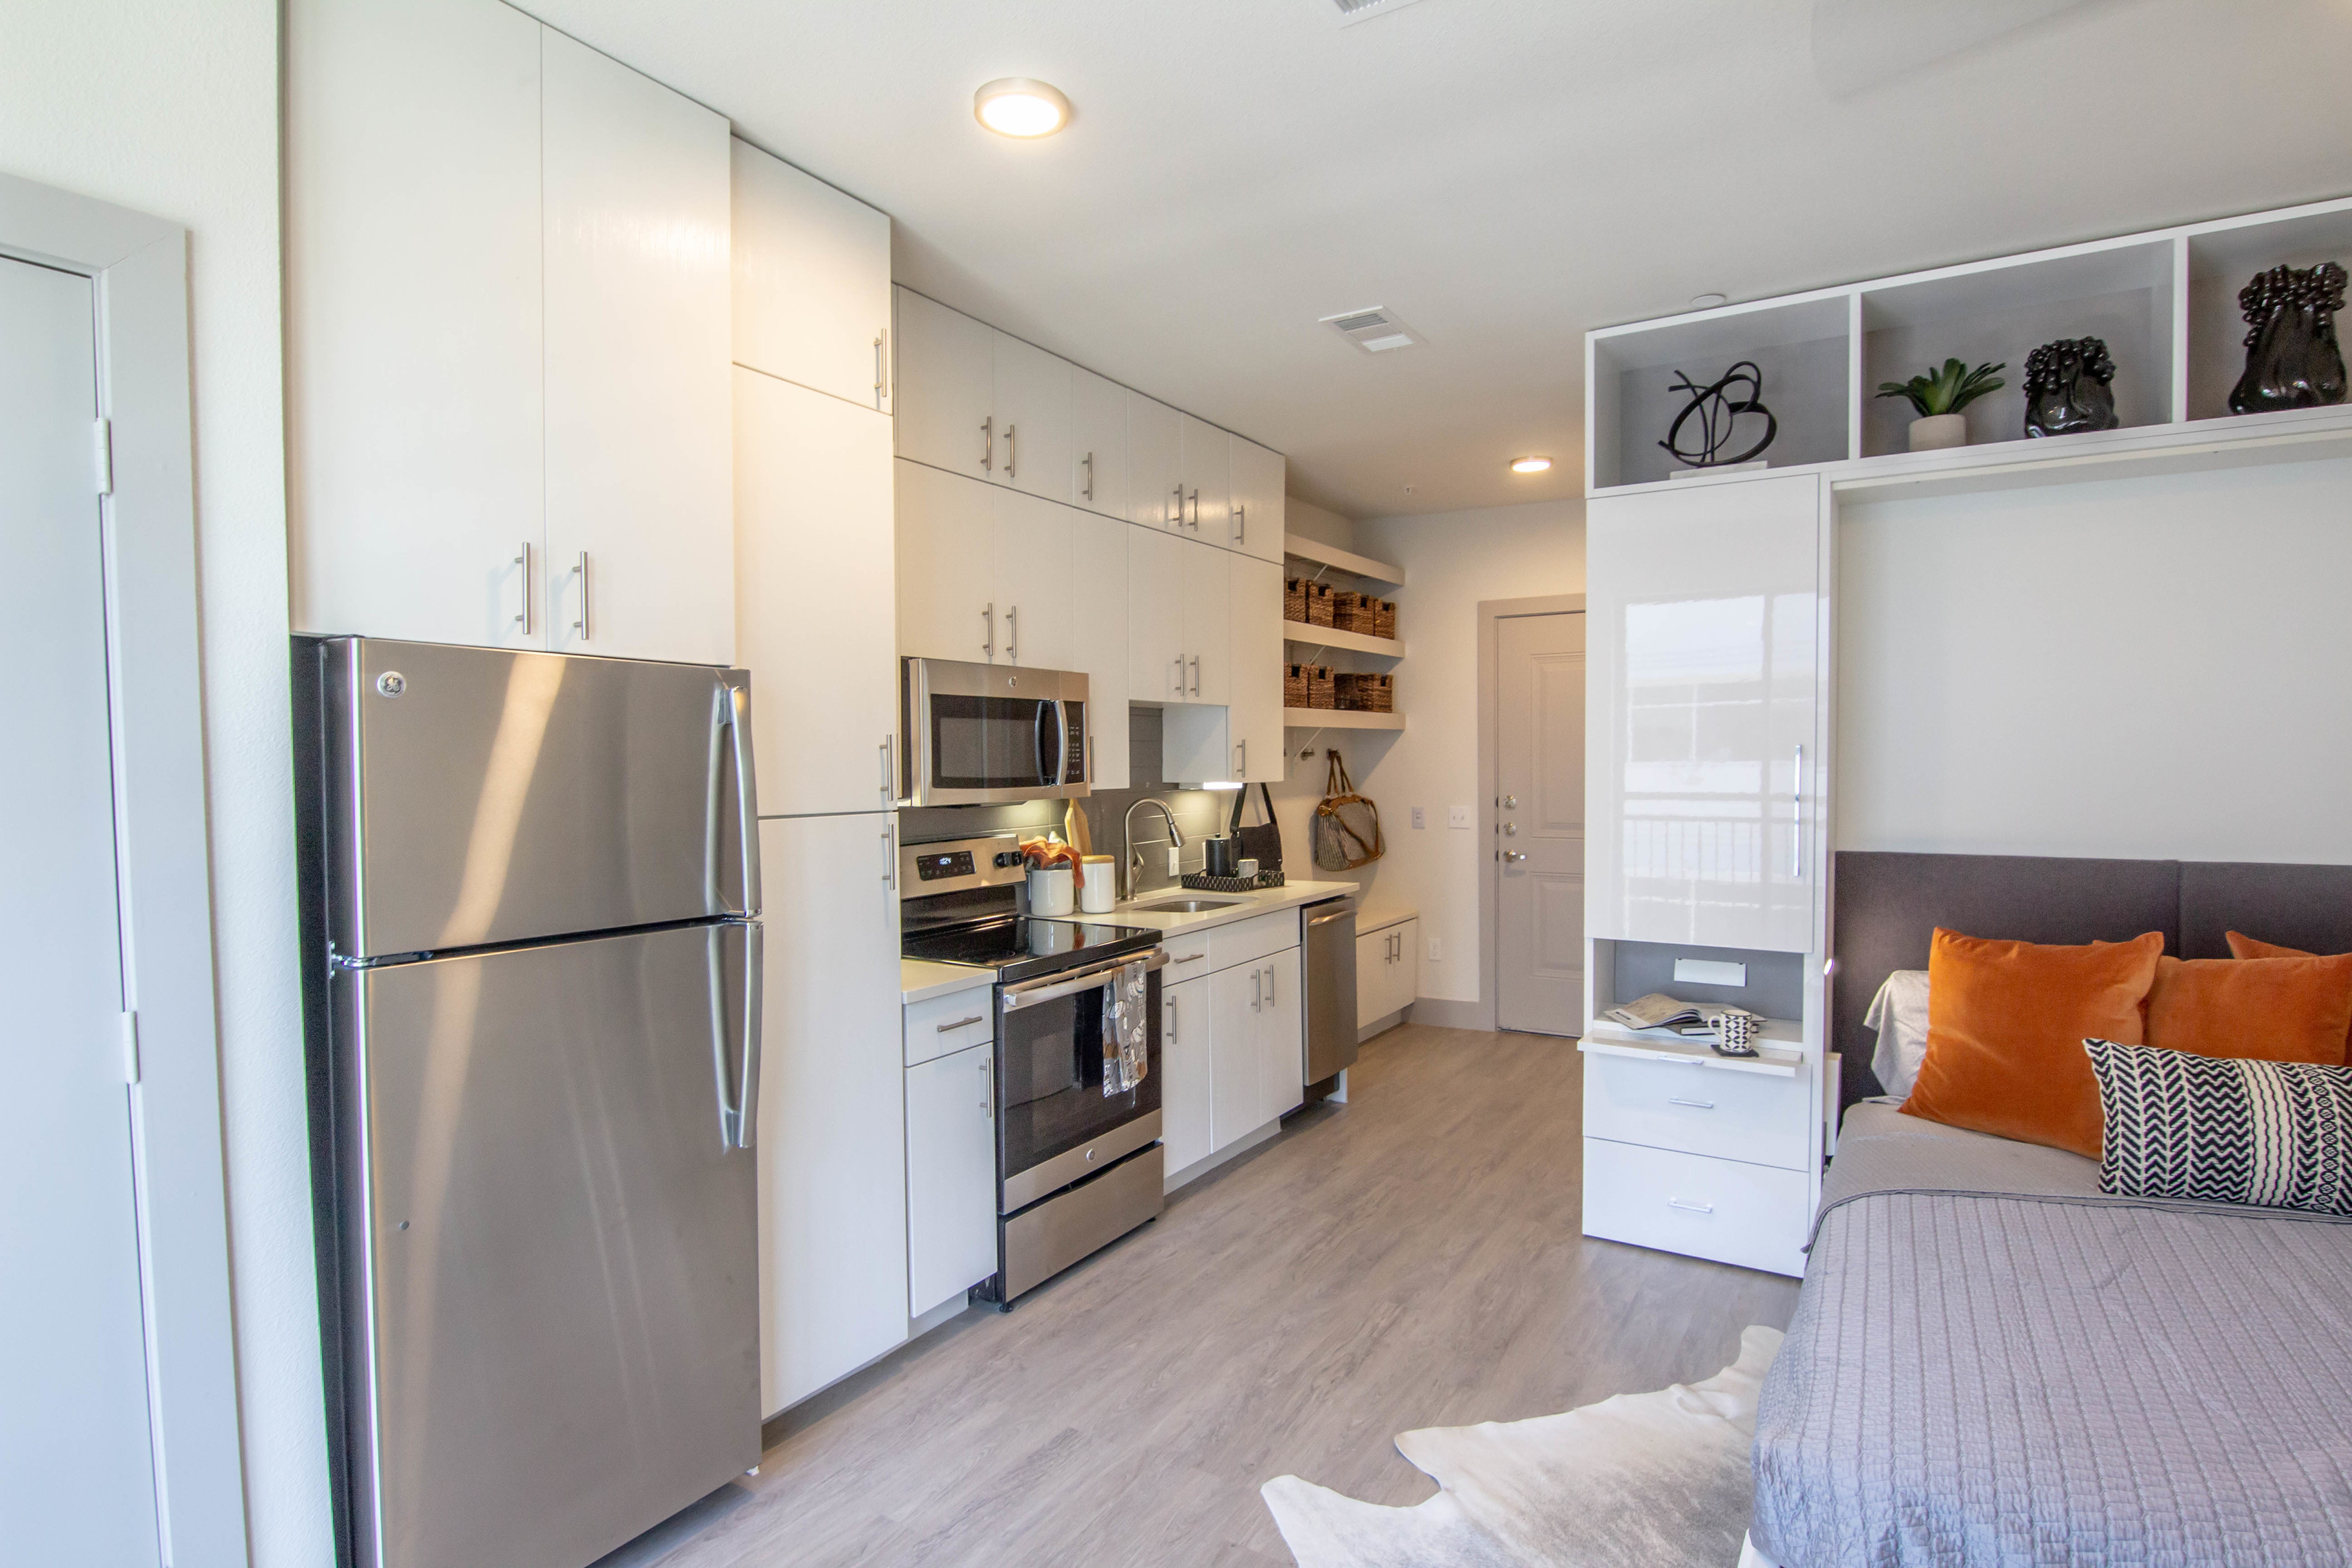 100 Best Apartments For Rent In Austin, TX (with pictures)! Ideas Cabinets Kitchen Ligood on